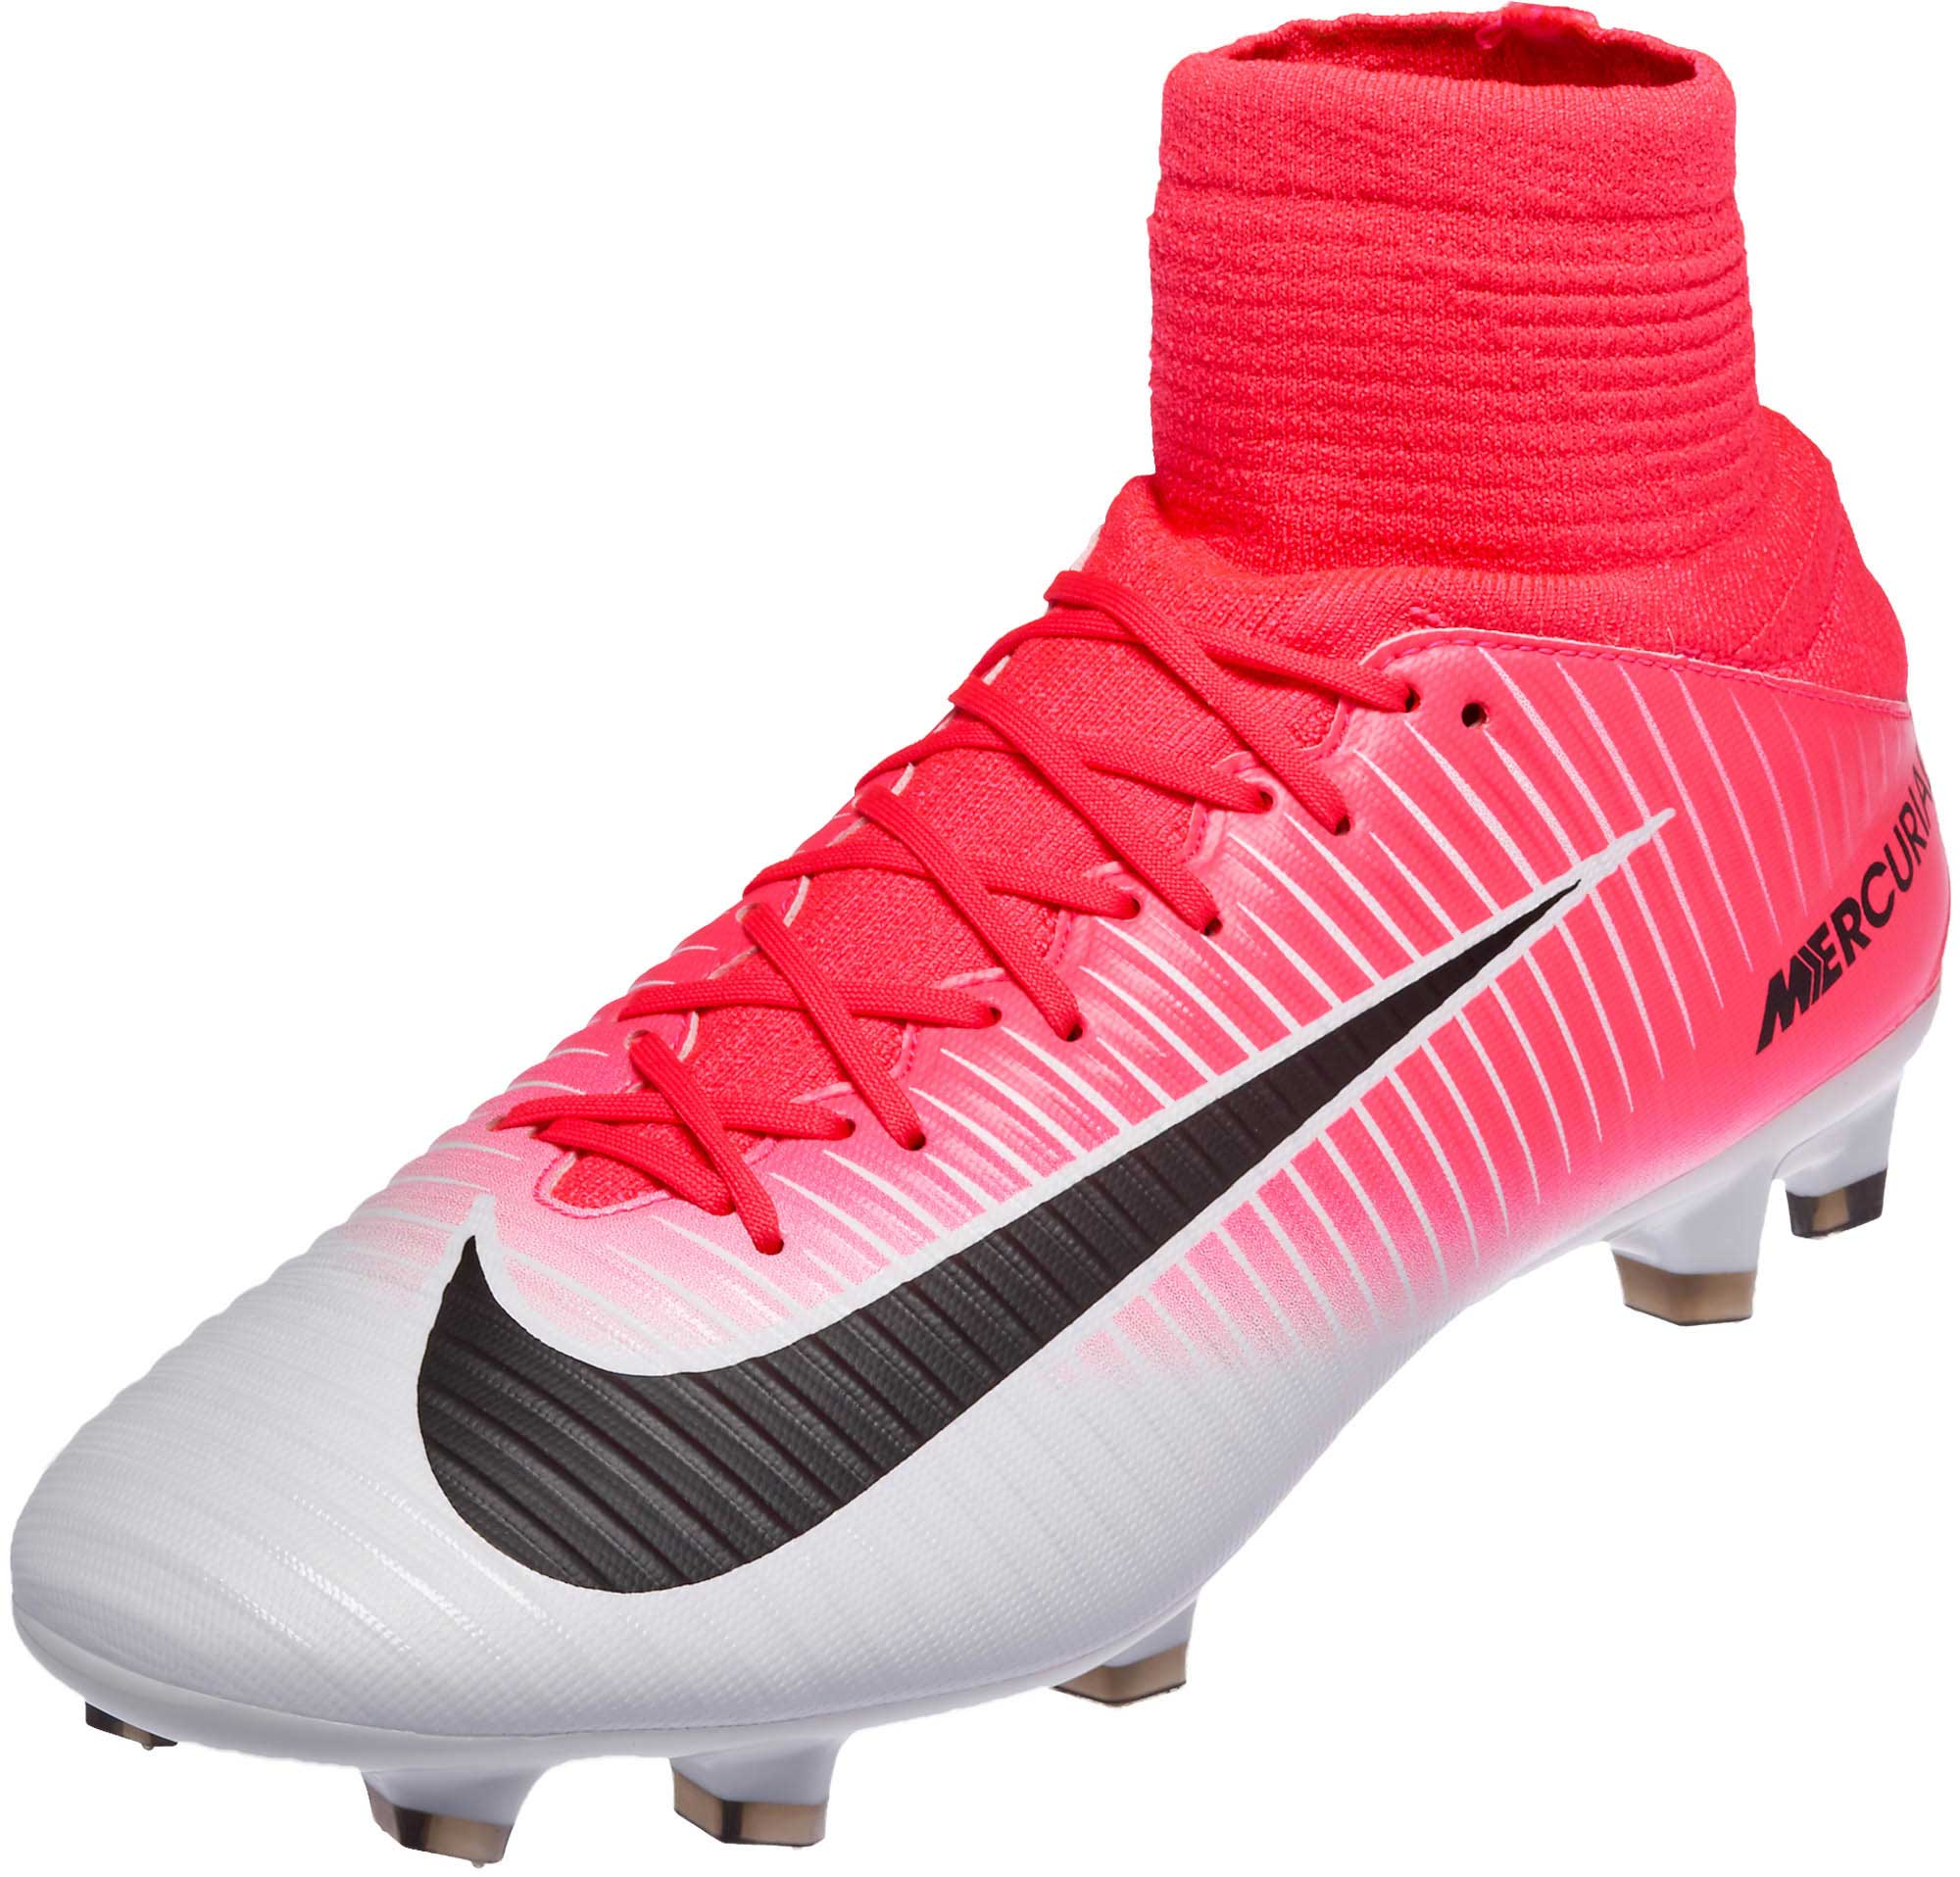 Nike Mercurial Veloce lll FG - Pink Soccer Cleats